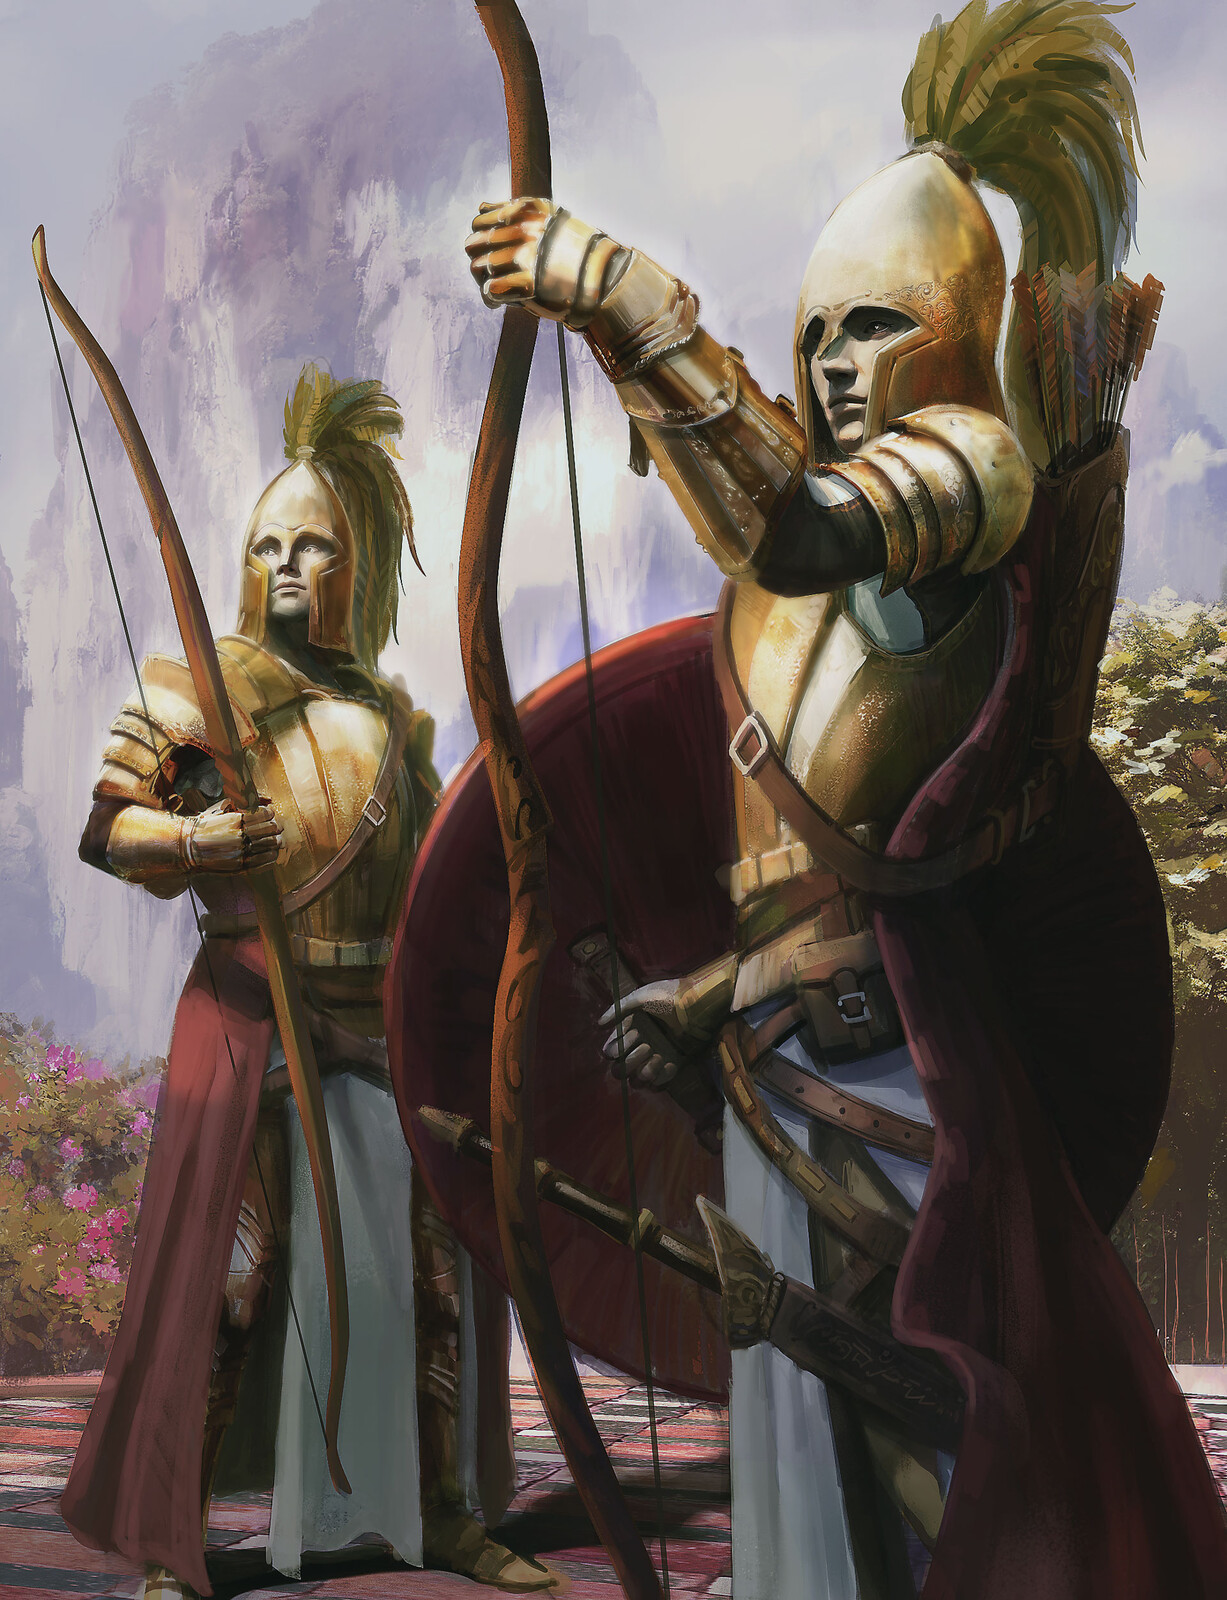 Gondolin golden gate guard - From the Silmarillion